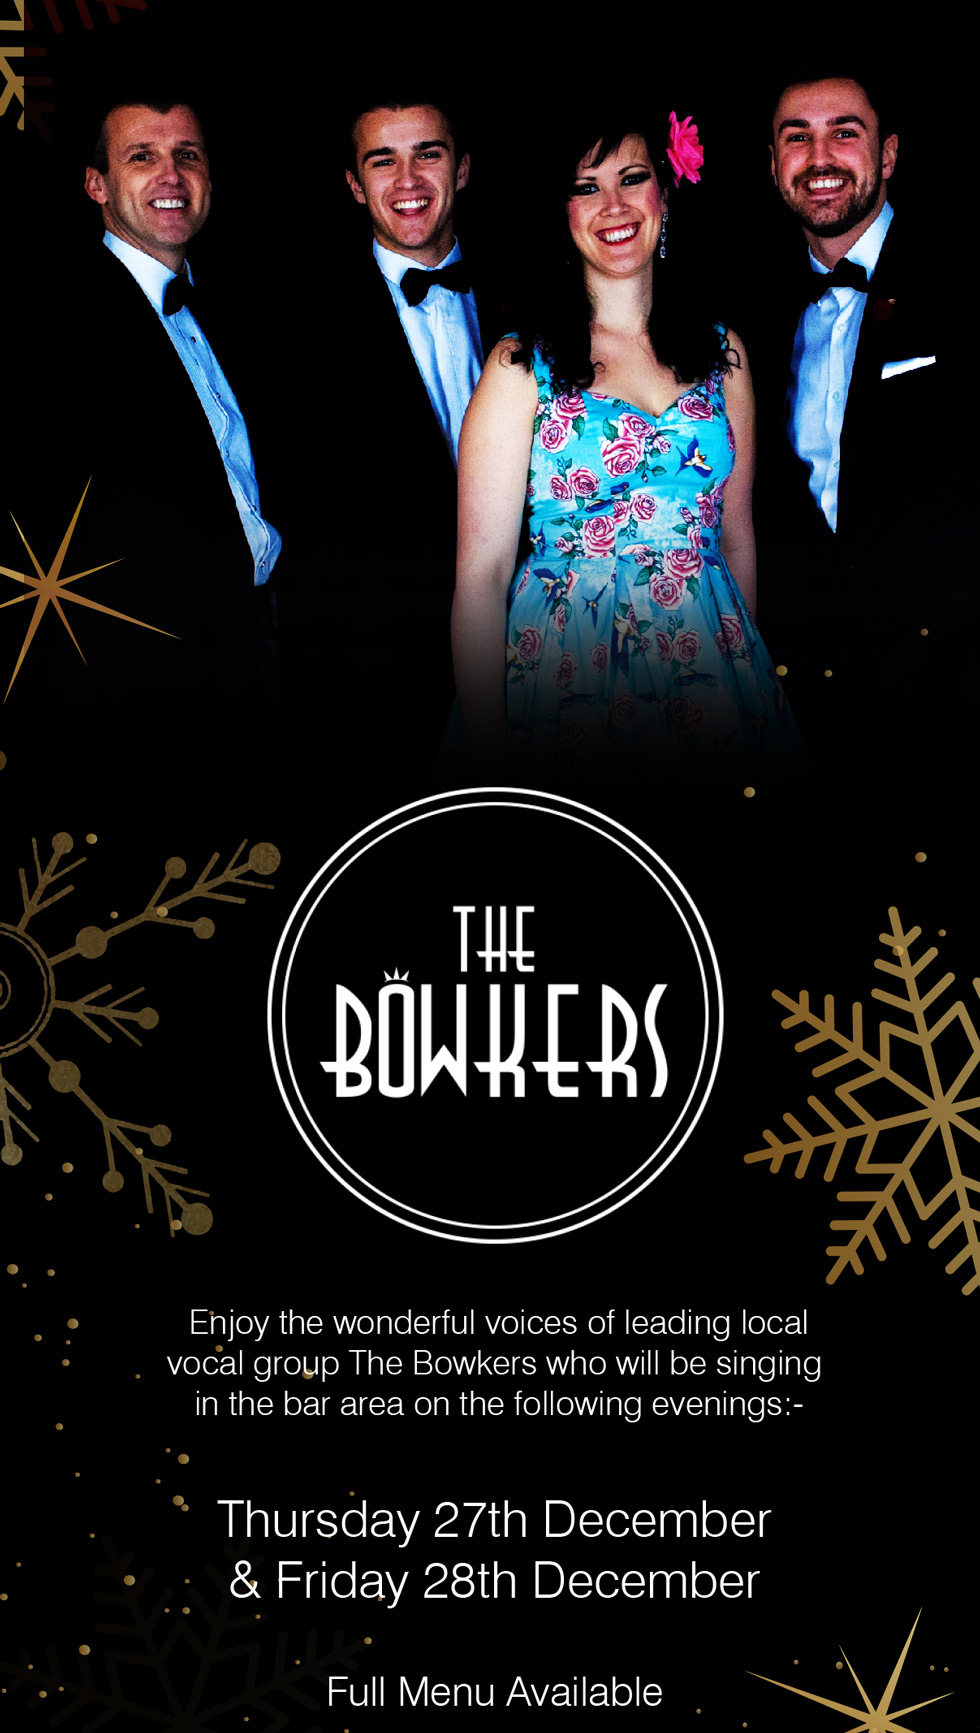 The Bowkers